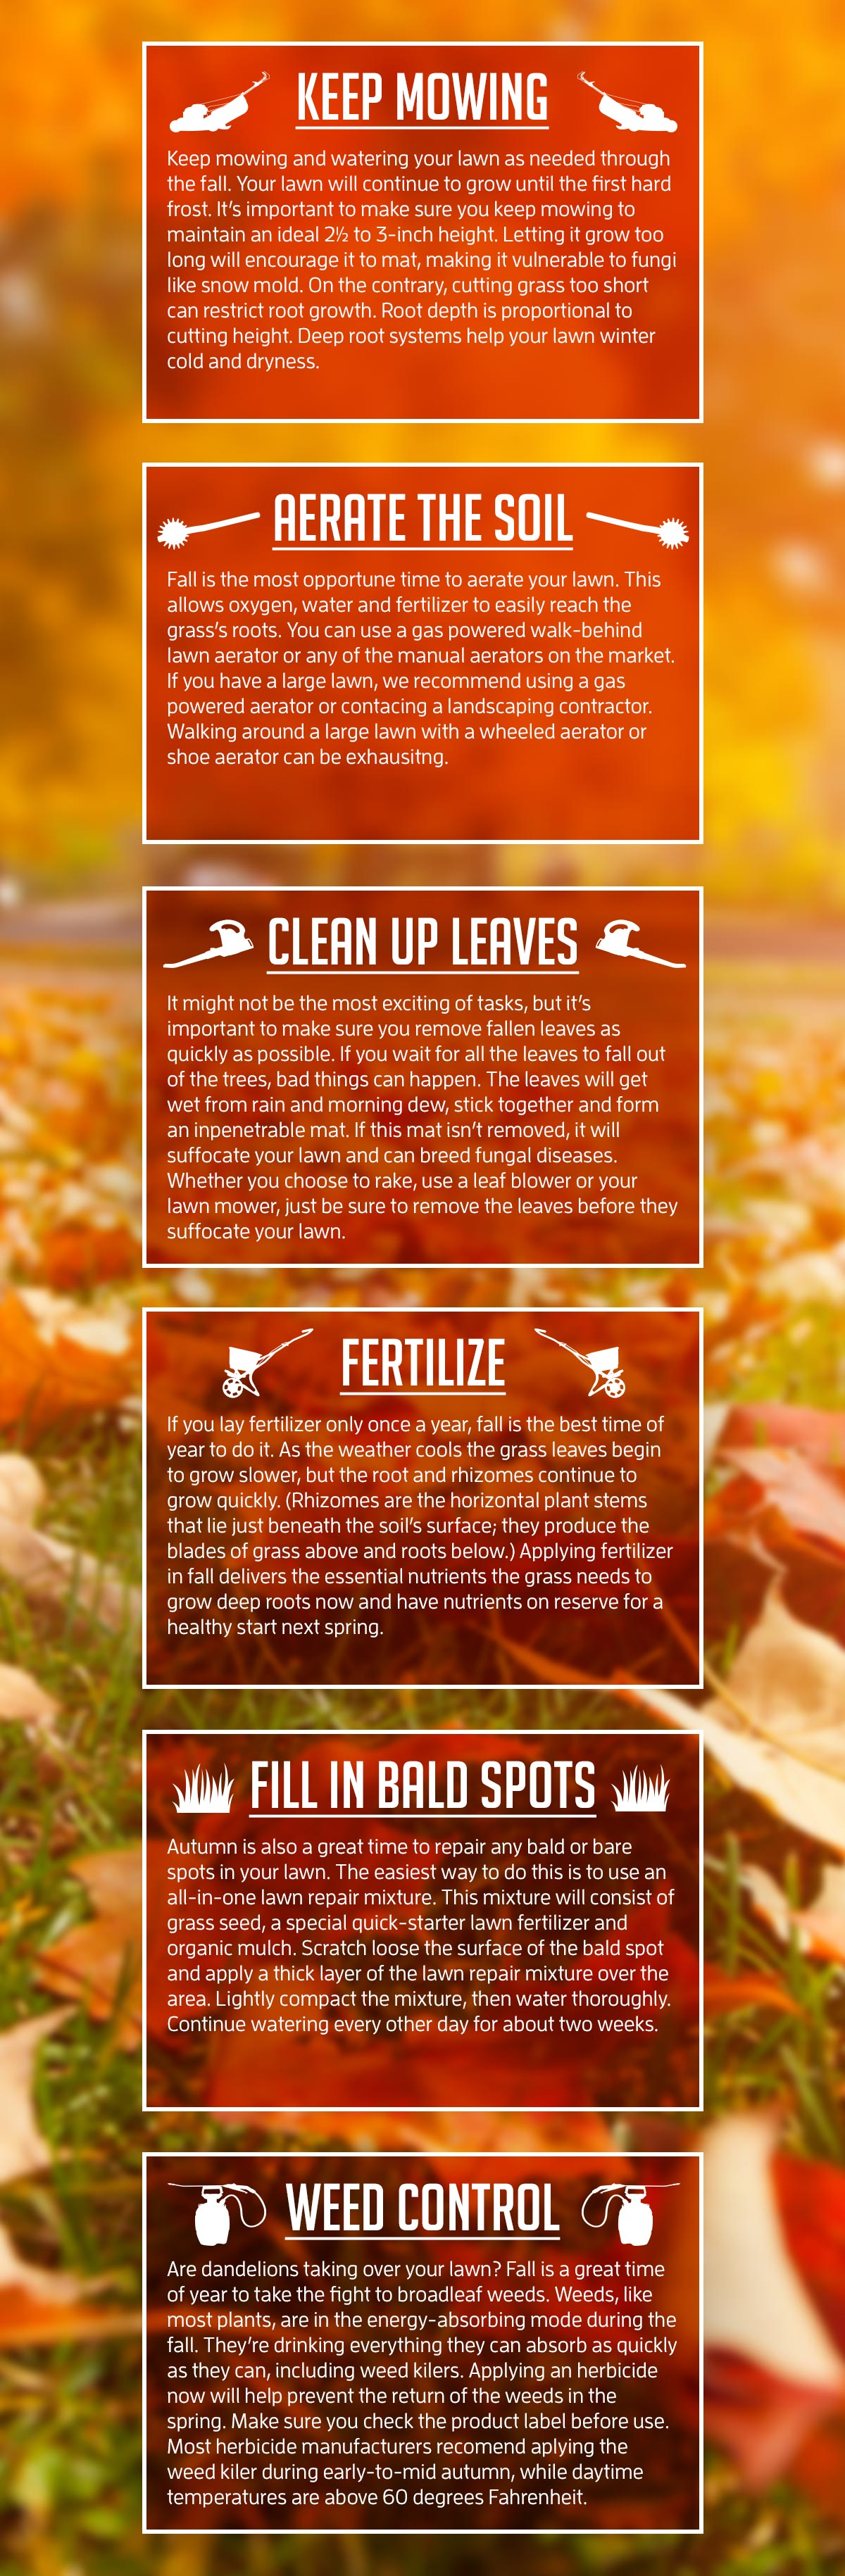 6 Fall Lawn Maintenance Tips You Can Use Now